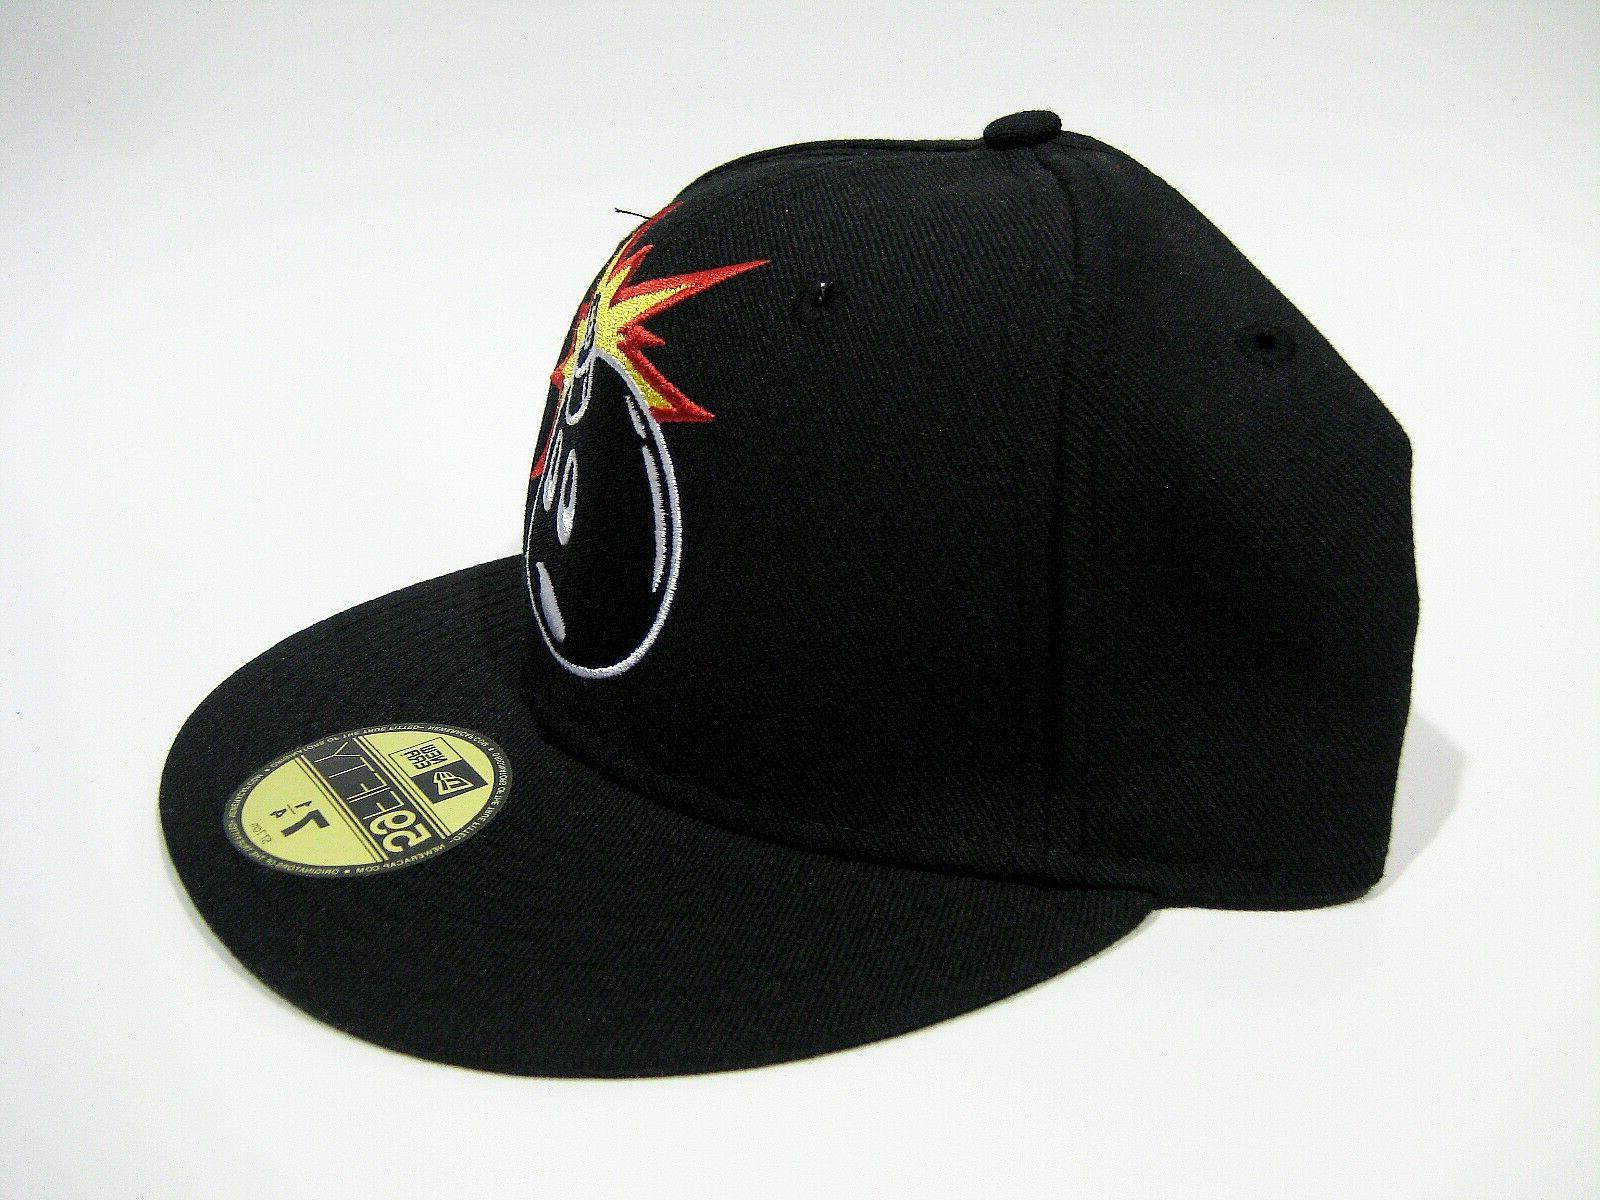 The New Fitted Hat Men's Cap 7 1/4